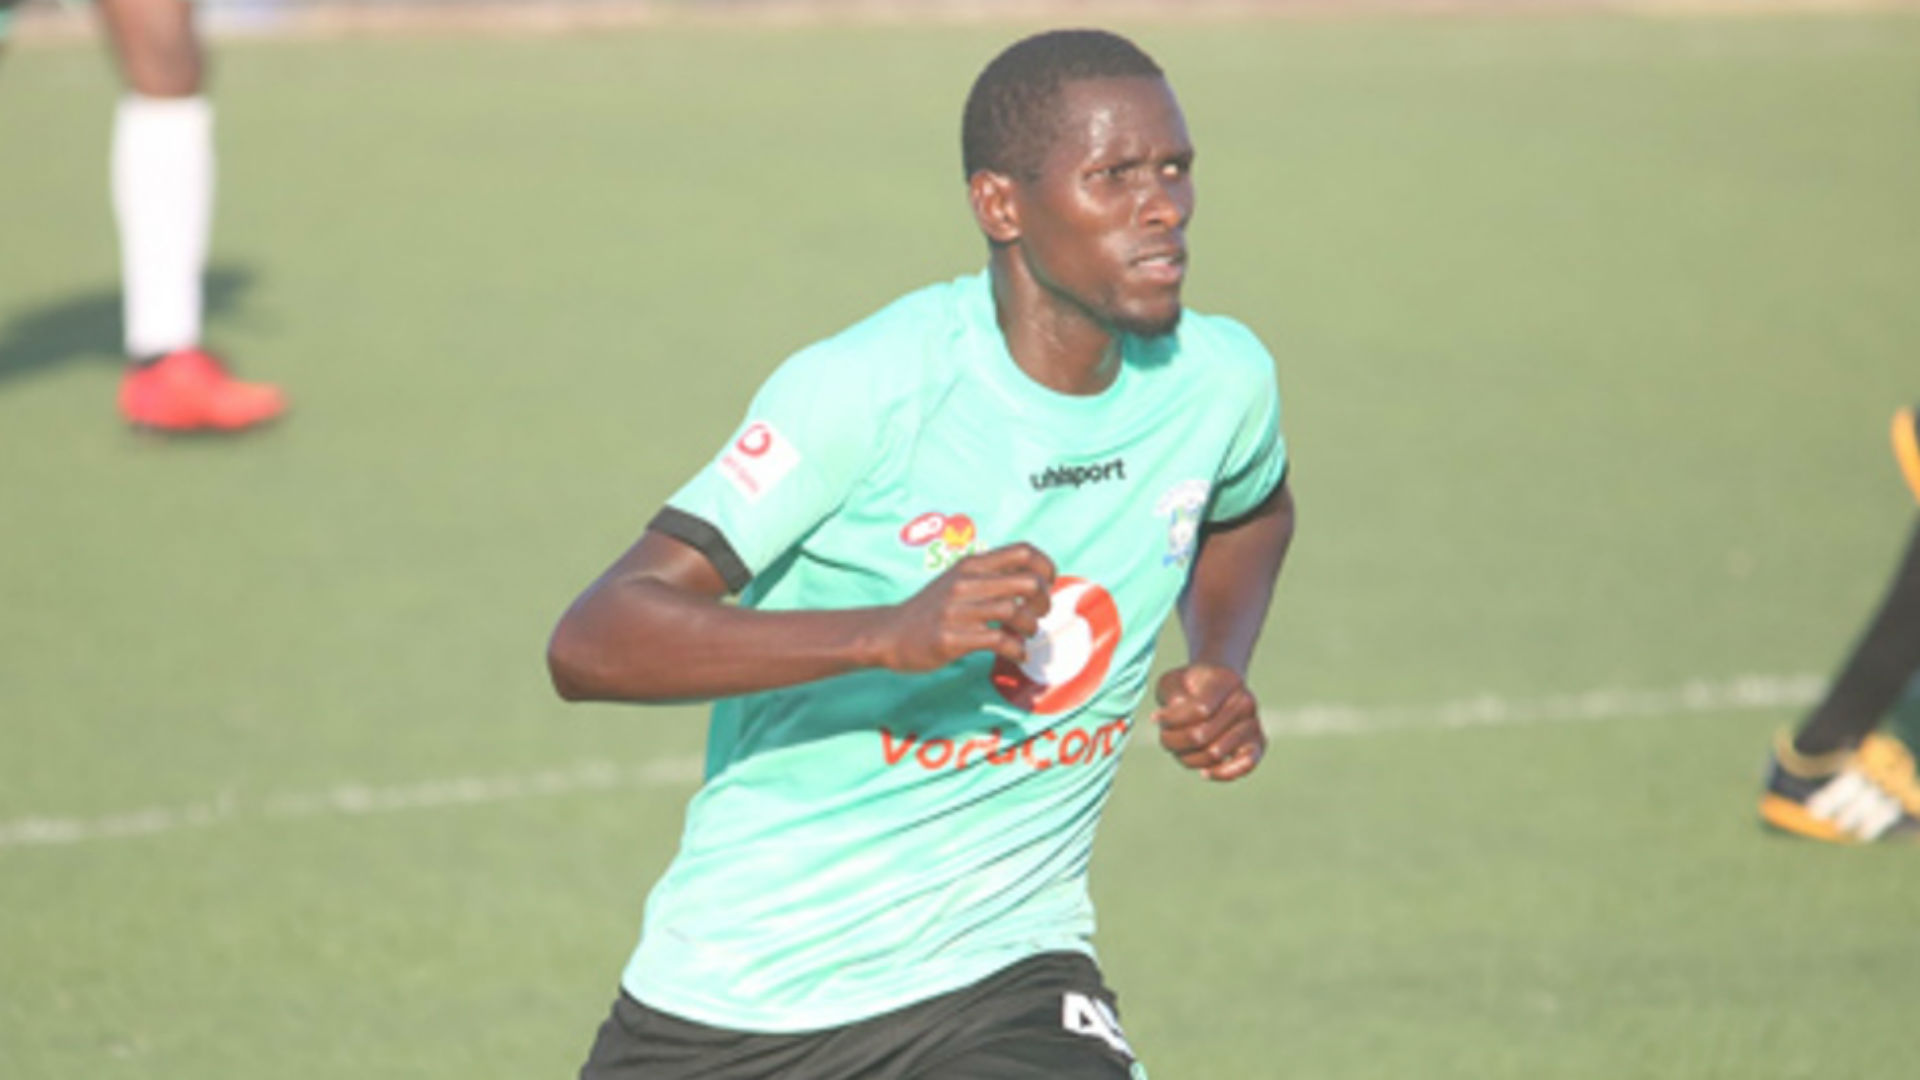 Lusajo can easily fit into Yanga SC or Simba SC's squad - Namungo FC's Thierry